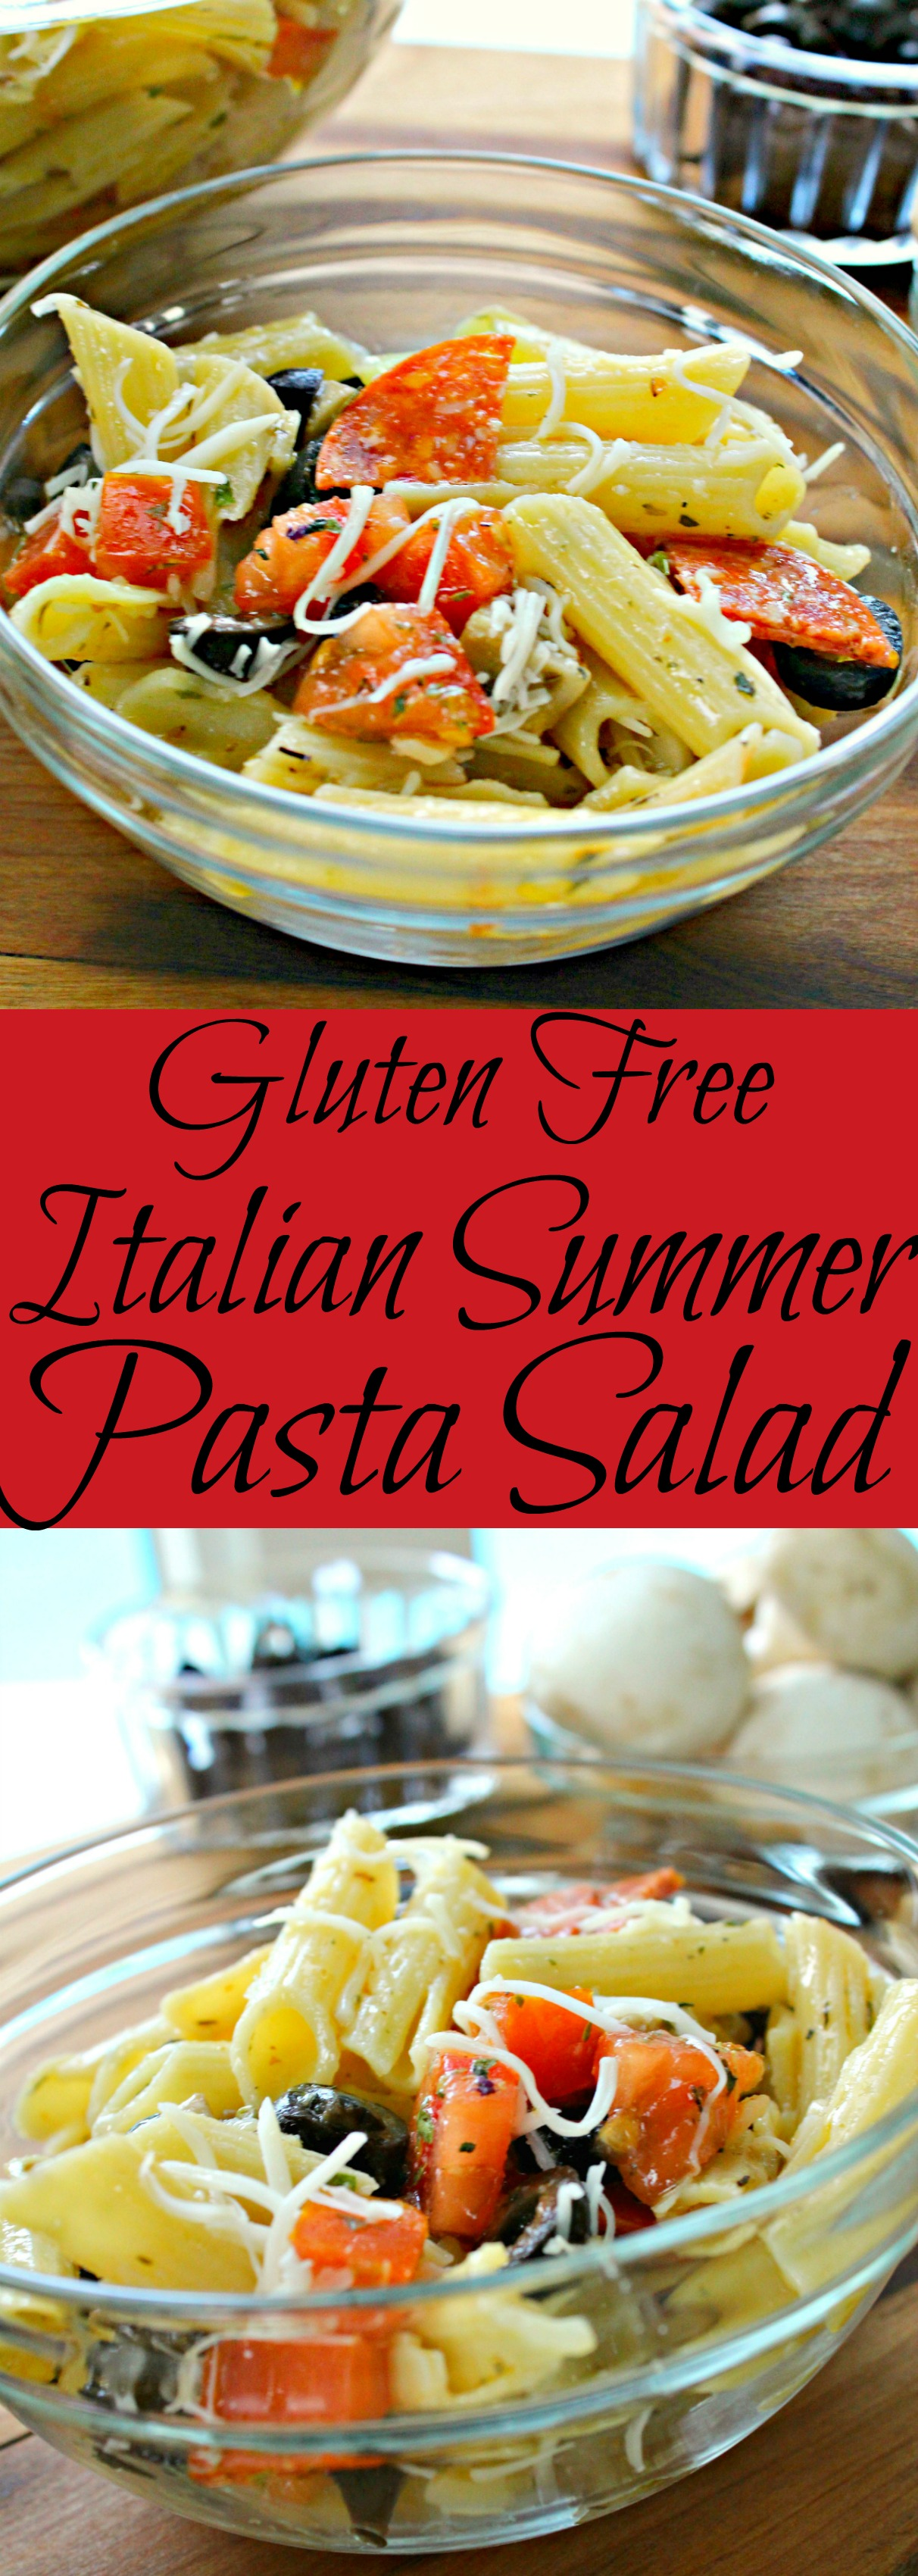 Italian Summer Pasta Salad Pin